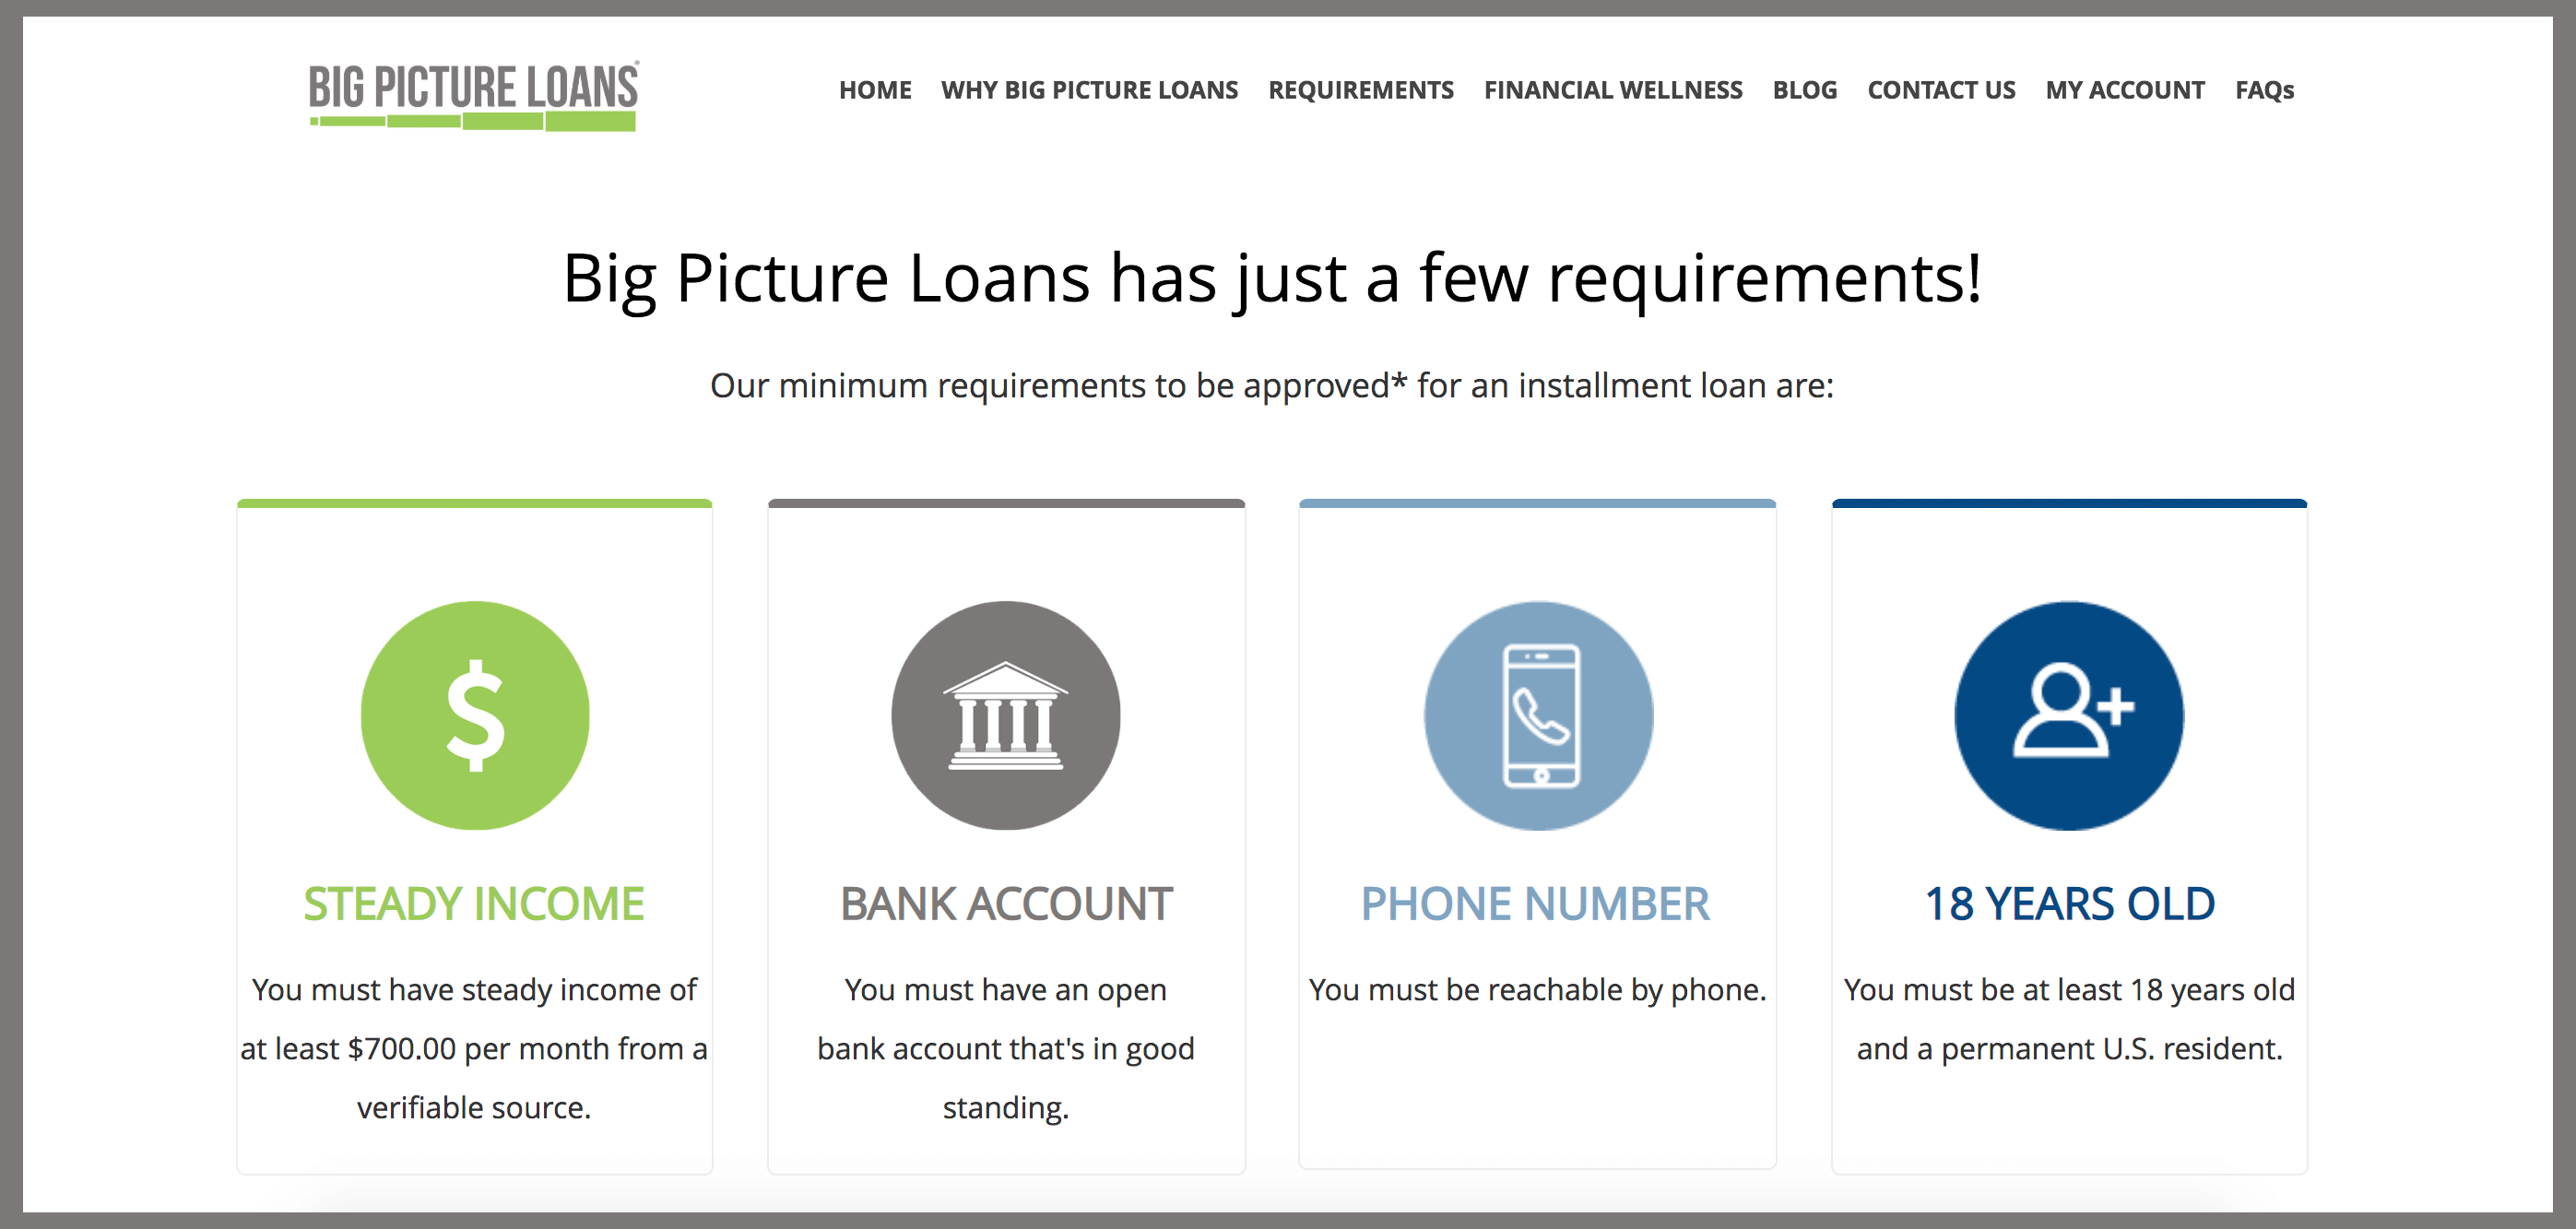 loans like big picture loans